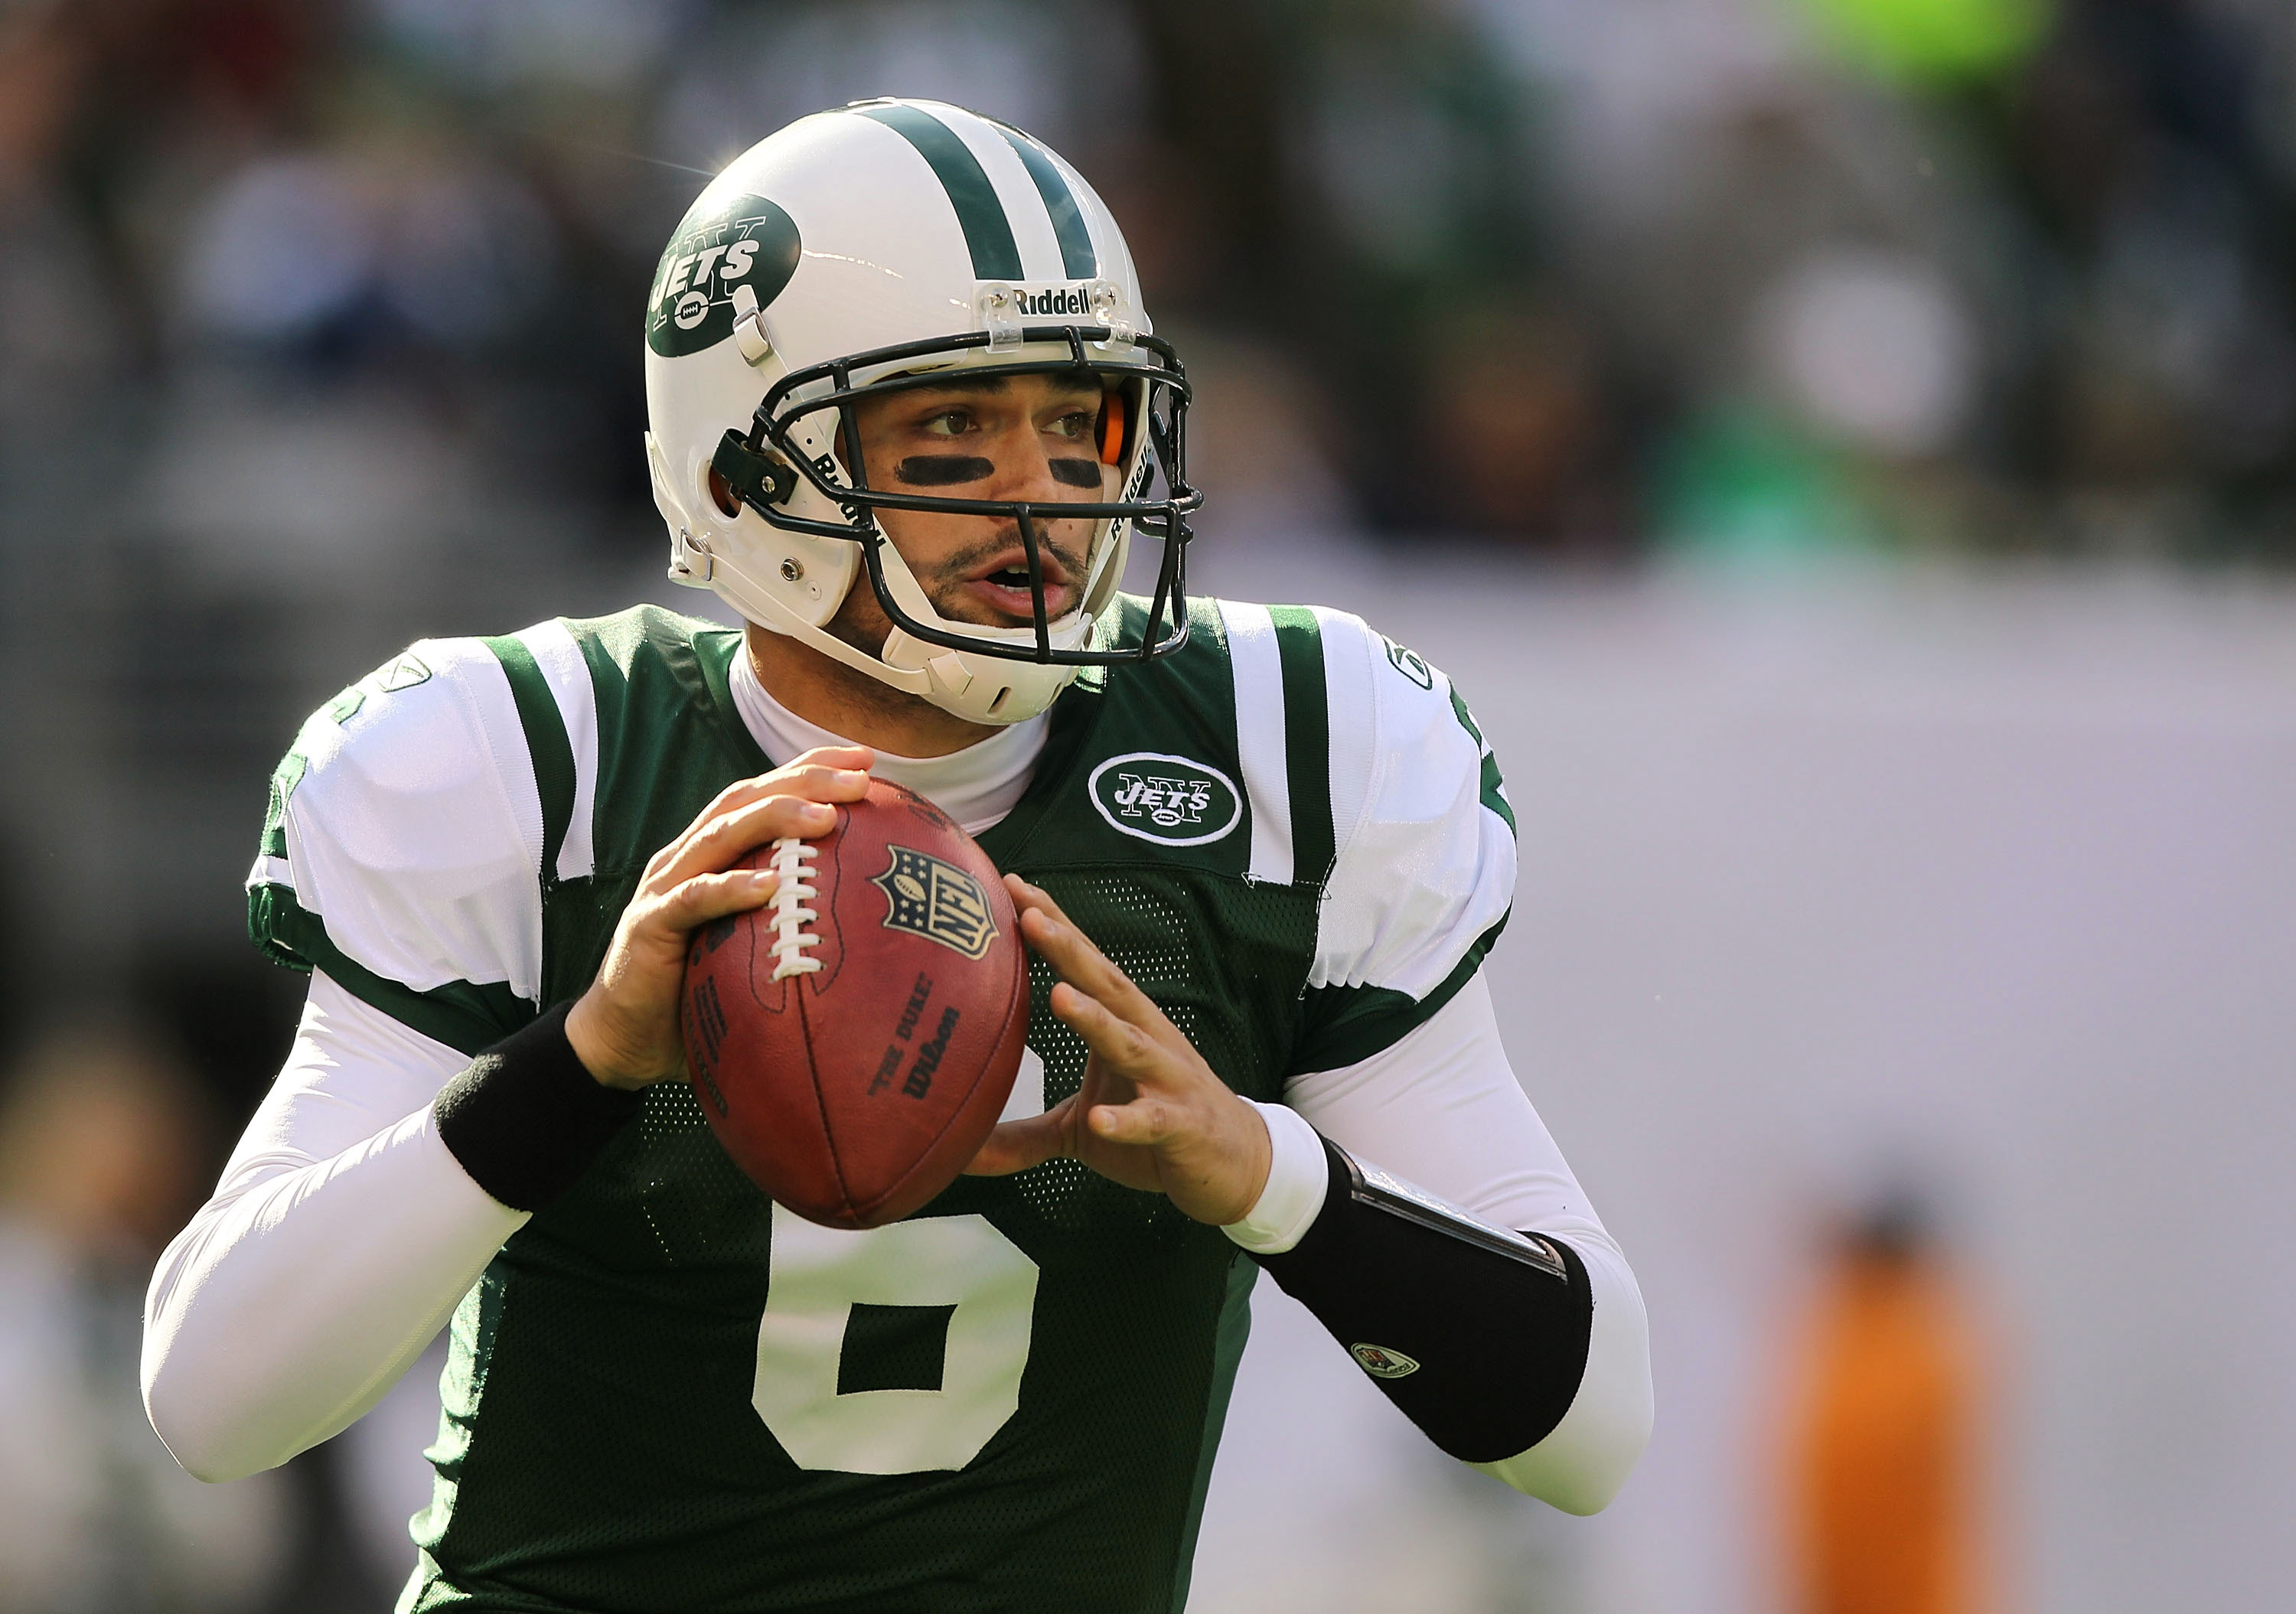 EAST RUTHERFORD, NJ - NOVEMBER 21:  Mark Sanchez #6 of the New York Jets throws against the Houston Texans on November 21, 2010 at the New Meadowlands Stadium in East Rutherford, New Jersey.  (Photo by Al Bello/Getty Images)